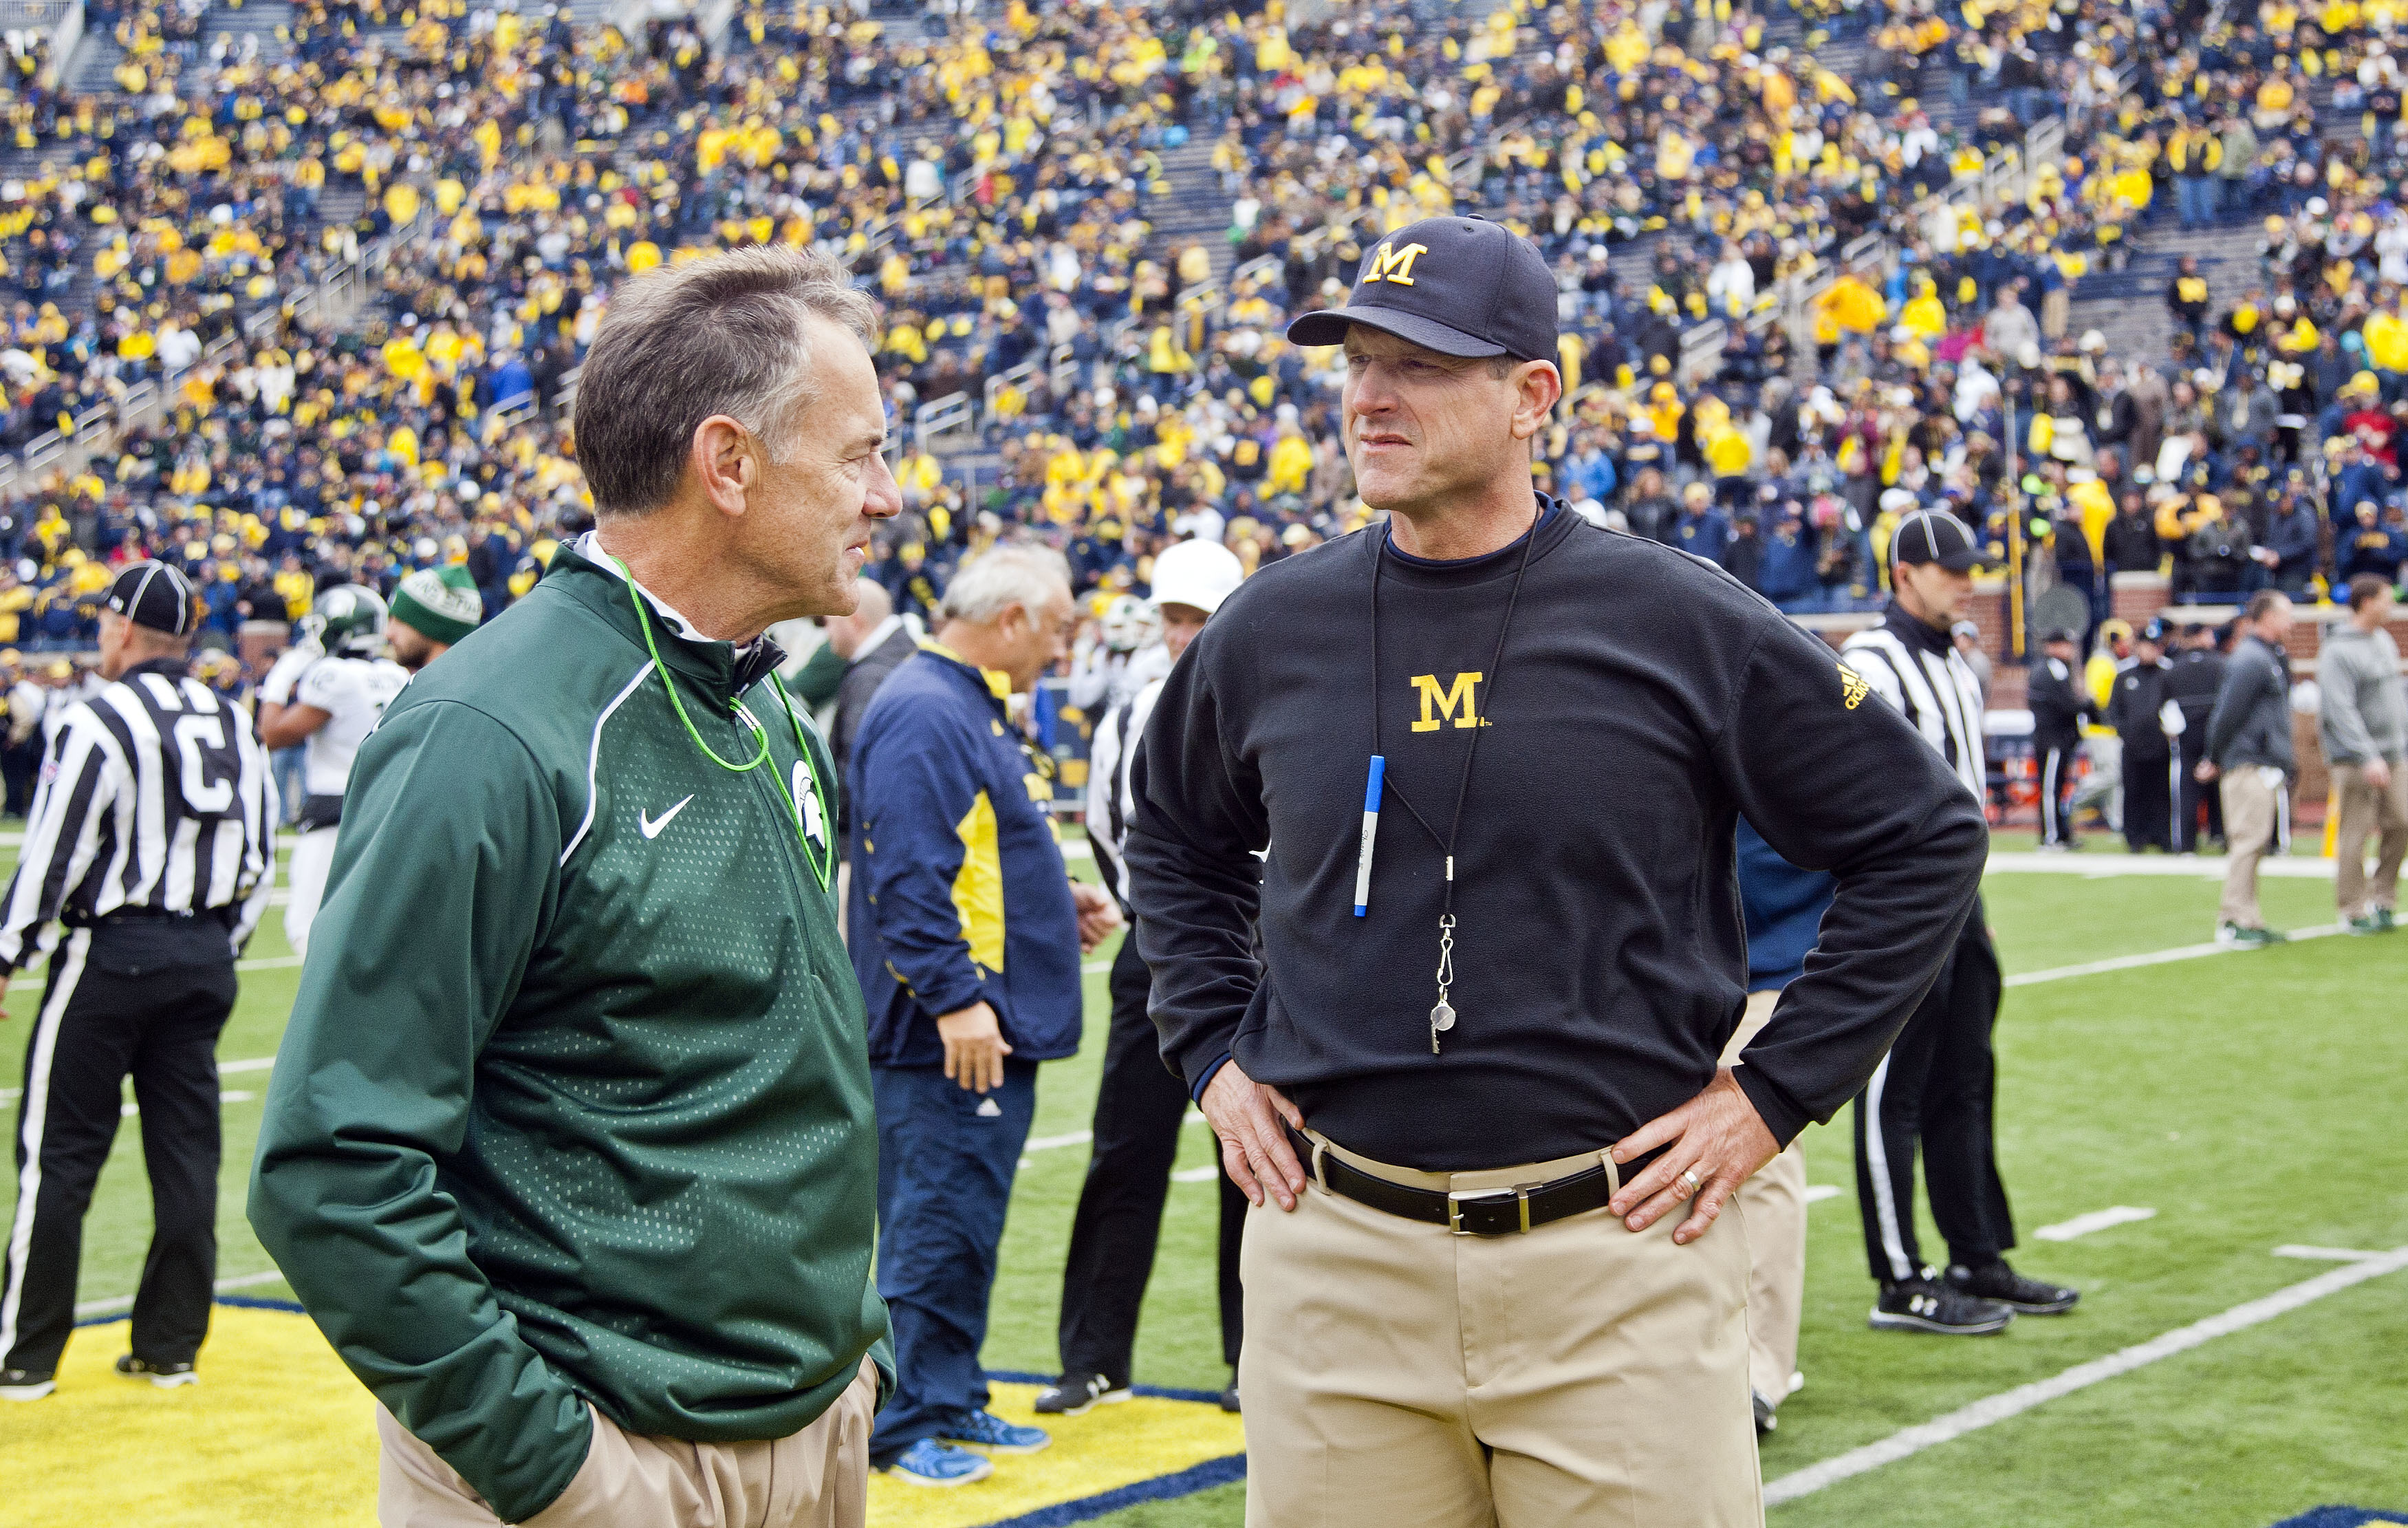 FILE - In this Oct. 17, 2015, file photo, Michigan State head coach Mark Dantonio, left, chats with Michigan head coach Jim Harbaugh before an NCAA college football game in Ann Arbor, Mich. Ohio State's last Saturday to Penn State has created this somewha